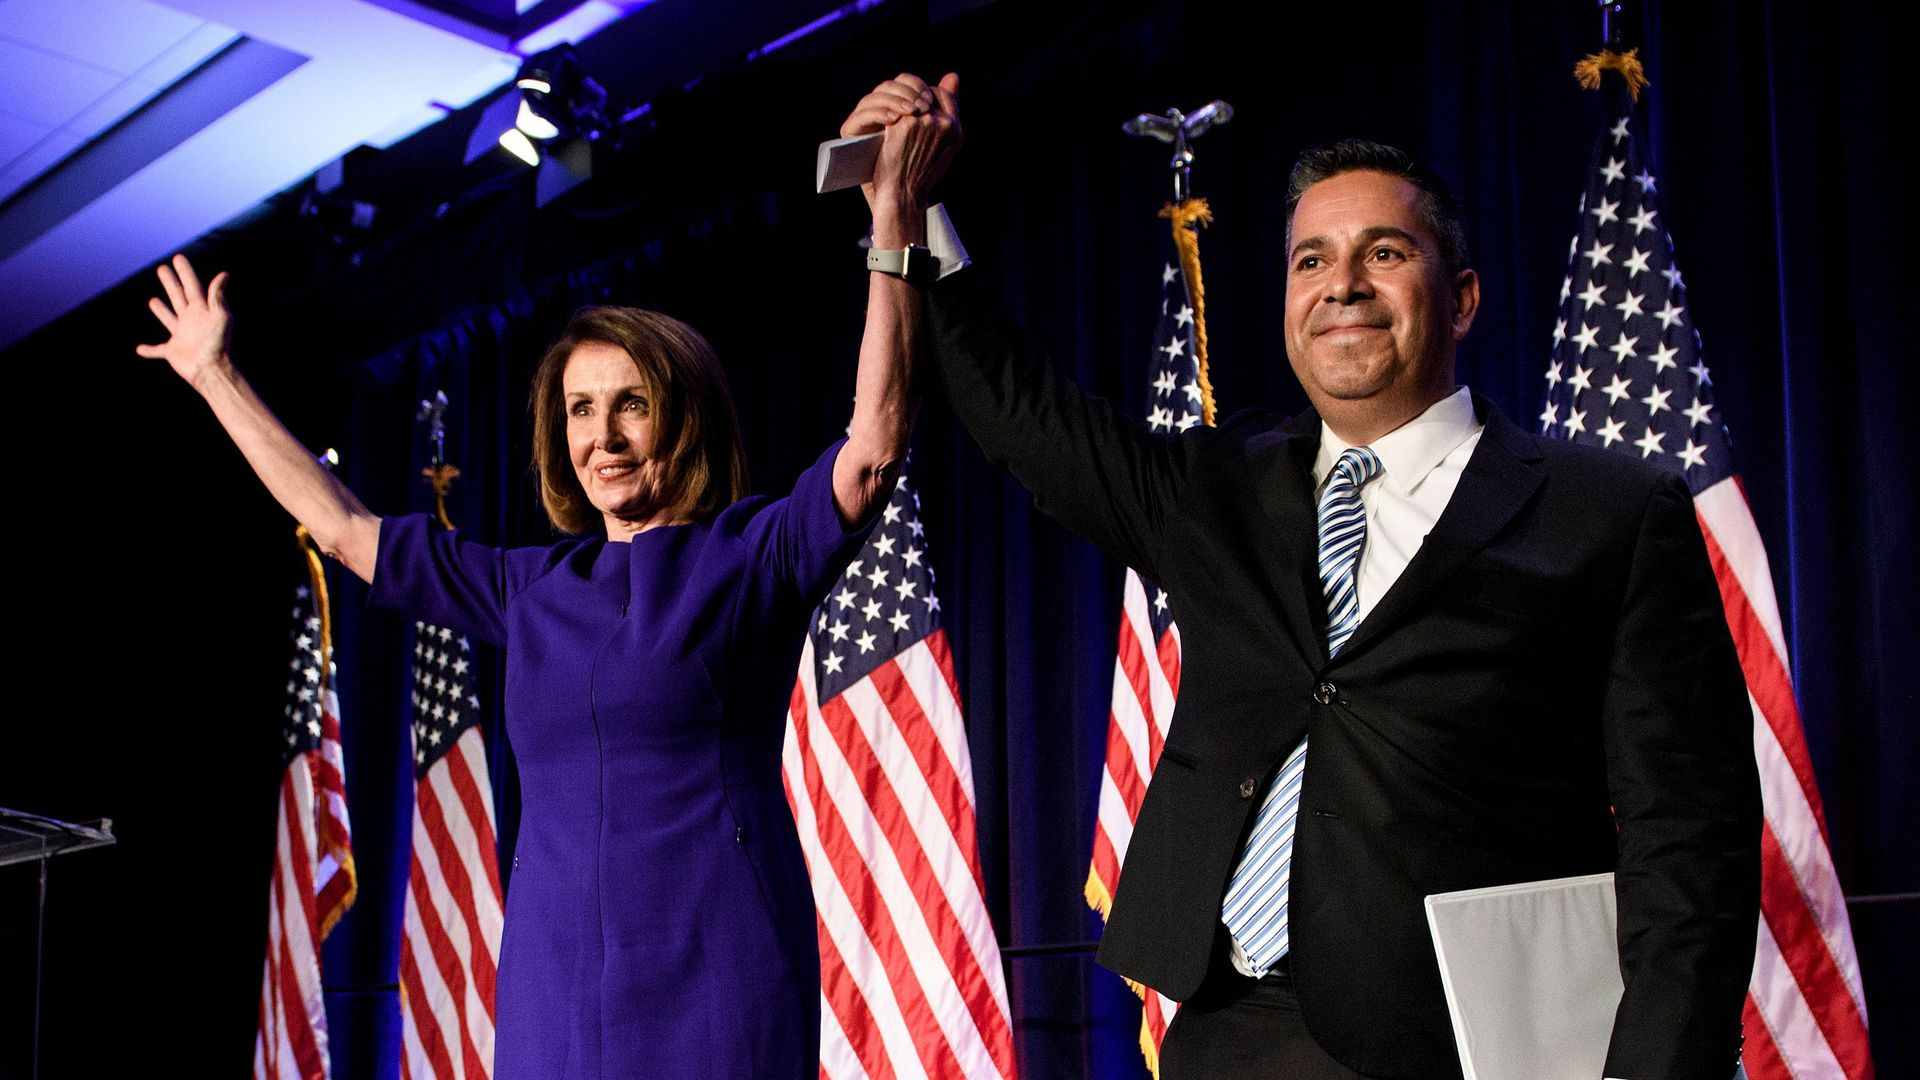 House Minority Leader Nancy Pelosi nd Rep. Ben Ray Lujan, DCCC Chairman on Election night.